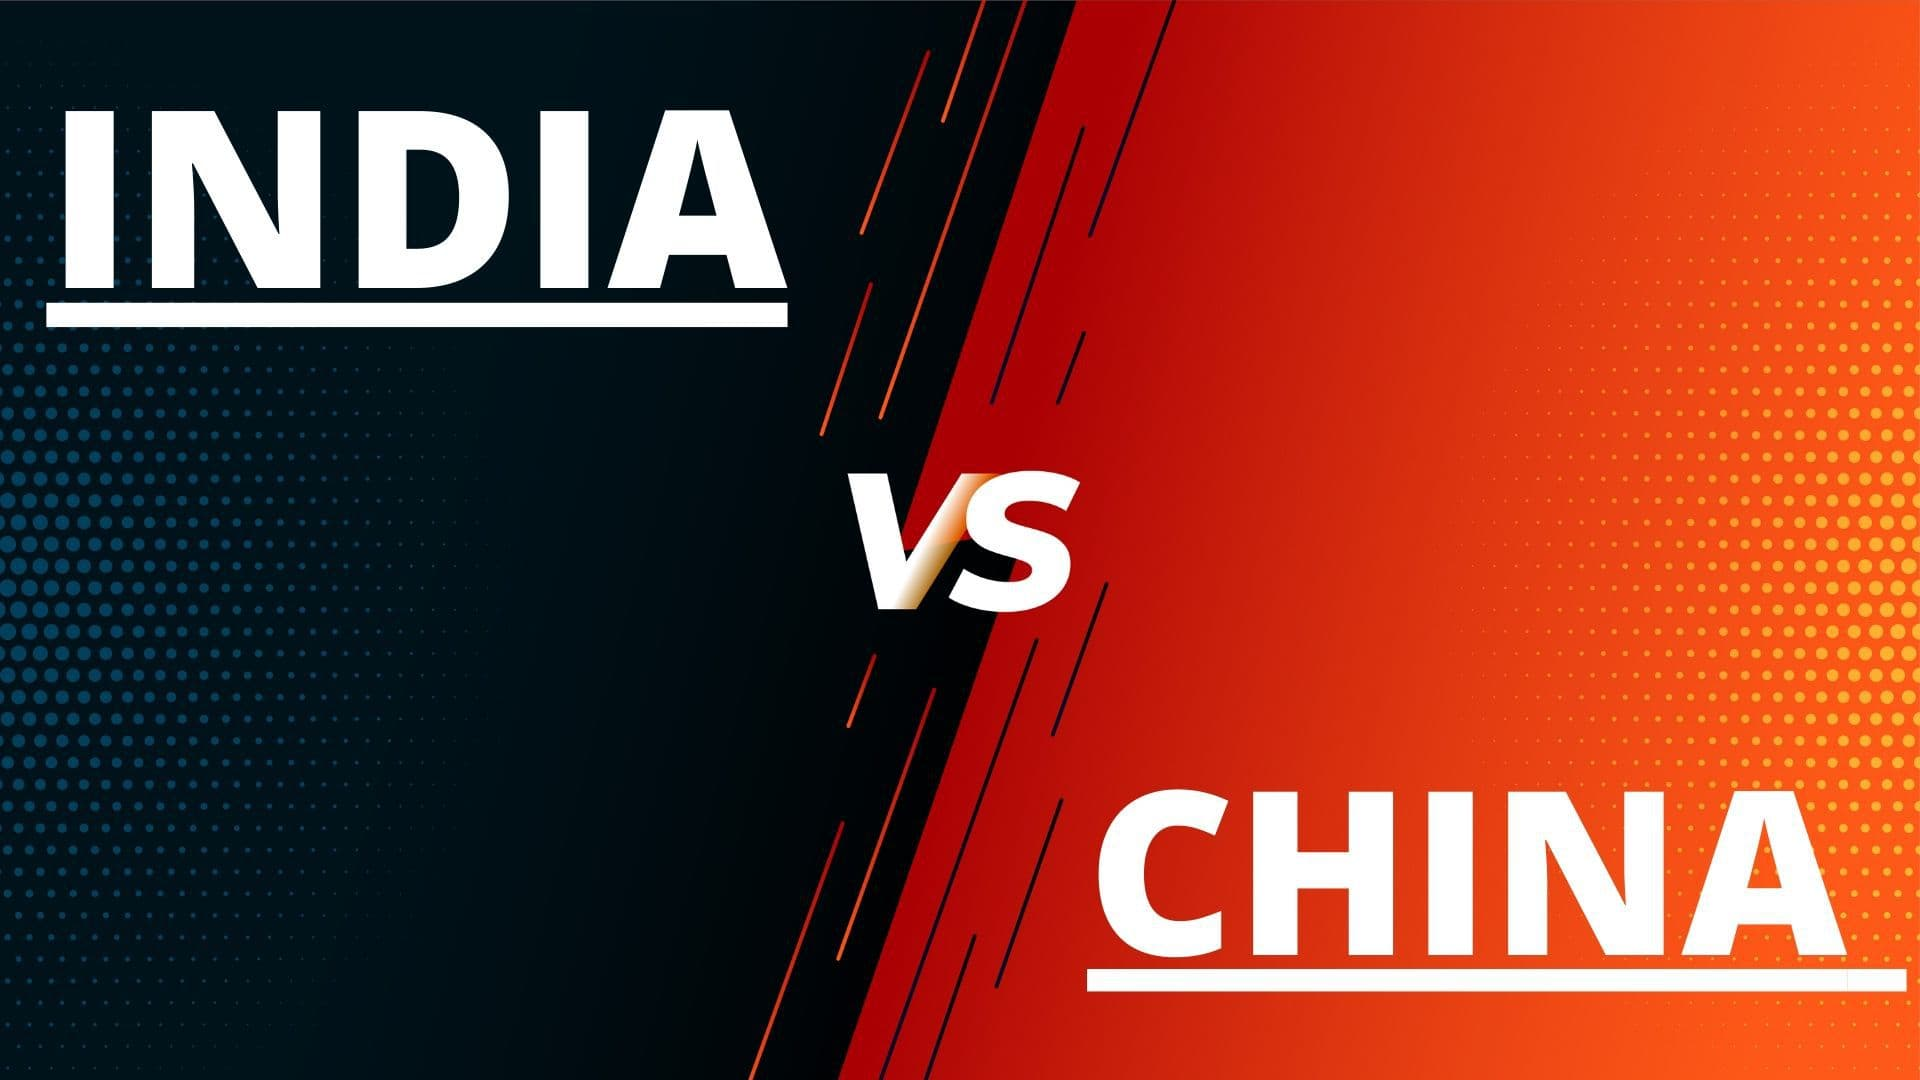 differences between China and India - 1